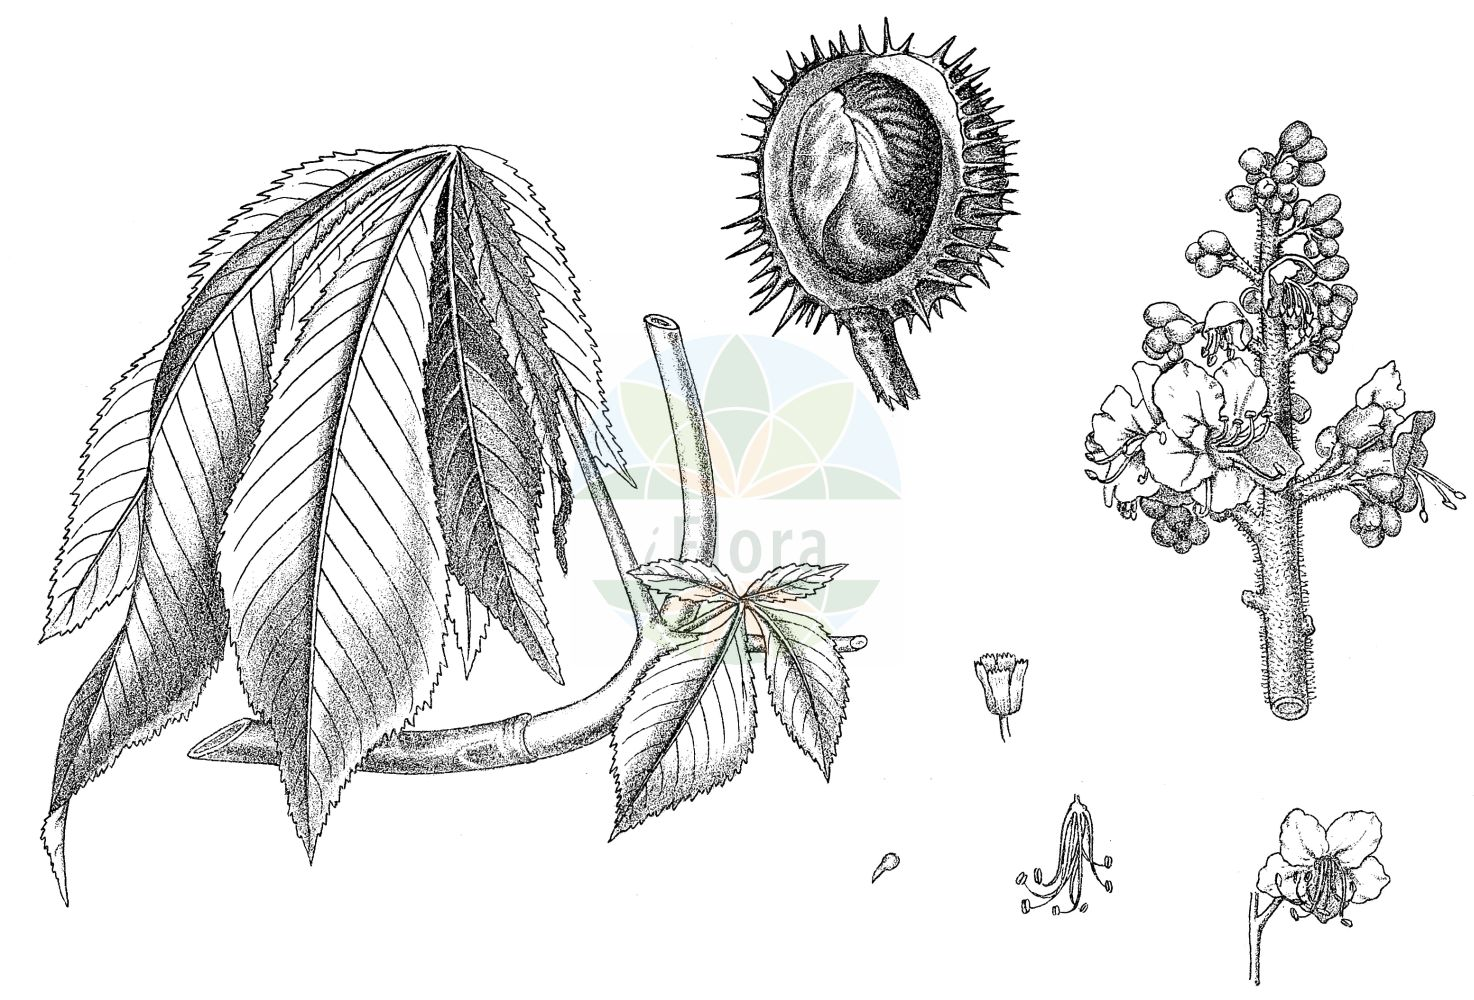 Historische Abbildung von Aesculus hippocastanum (Gewoehnliche Rosskastanie - Horse-chestnut). Das Bild zeigt Blatt, Bluete, Frucht und Same. ---- Historical Drawing of Aesculus hippocastanum (Gewoehnliche Rosskastanie - Horse-chestnut).The image is showing leaf, flower, fruit and seed.(Aesculus hippocastanum,Gewoehnliche Rosskastanie,Horse-chestnut,Aesculus hippocastanum,Gewoehnliche Rosskastanie,Balkan-Rosskastanie,Europaeische Rosskastanie,Weisse Rosskastanie,Horse-chestnut,Common Horse Chestnut,Aesculus,Rosskastanie,Horse-chestnut,Sapindaceae,Seifenbaumgewaechse,Soapberry family,Blatt,Bluete,Frucht,Same,leaf,flower,fruit,seed,Kirtikar & Basu (1918))